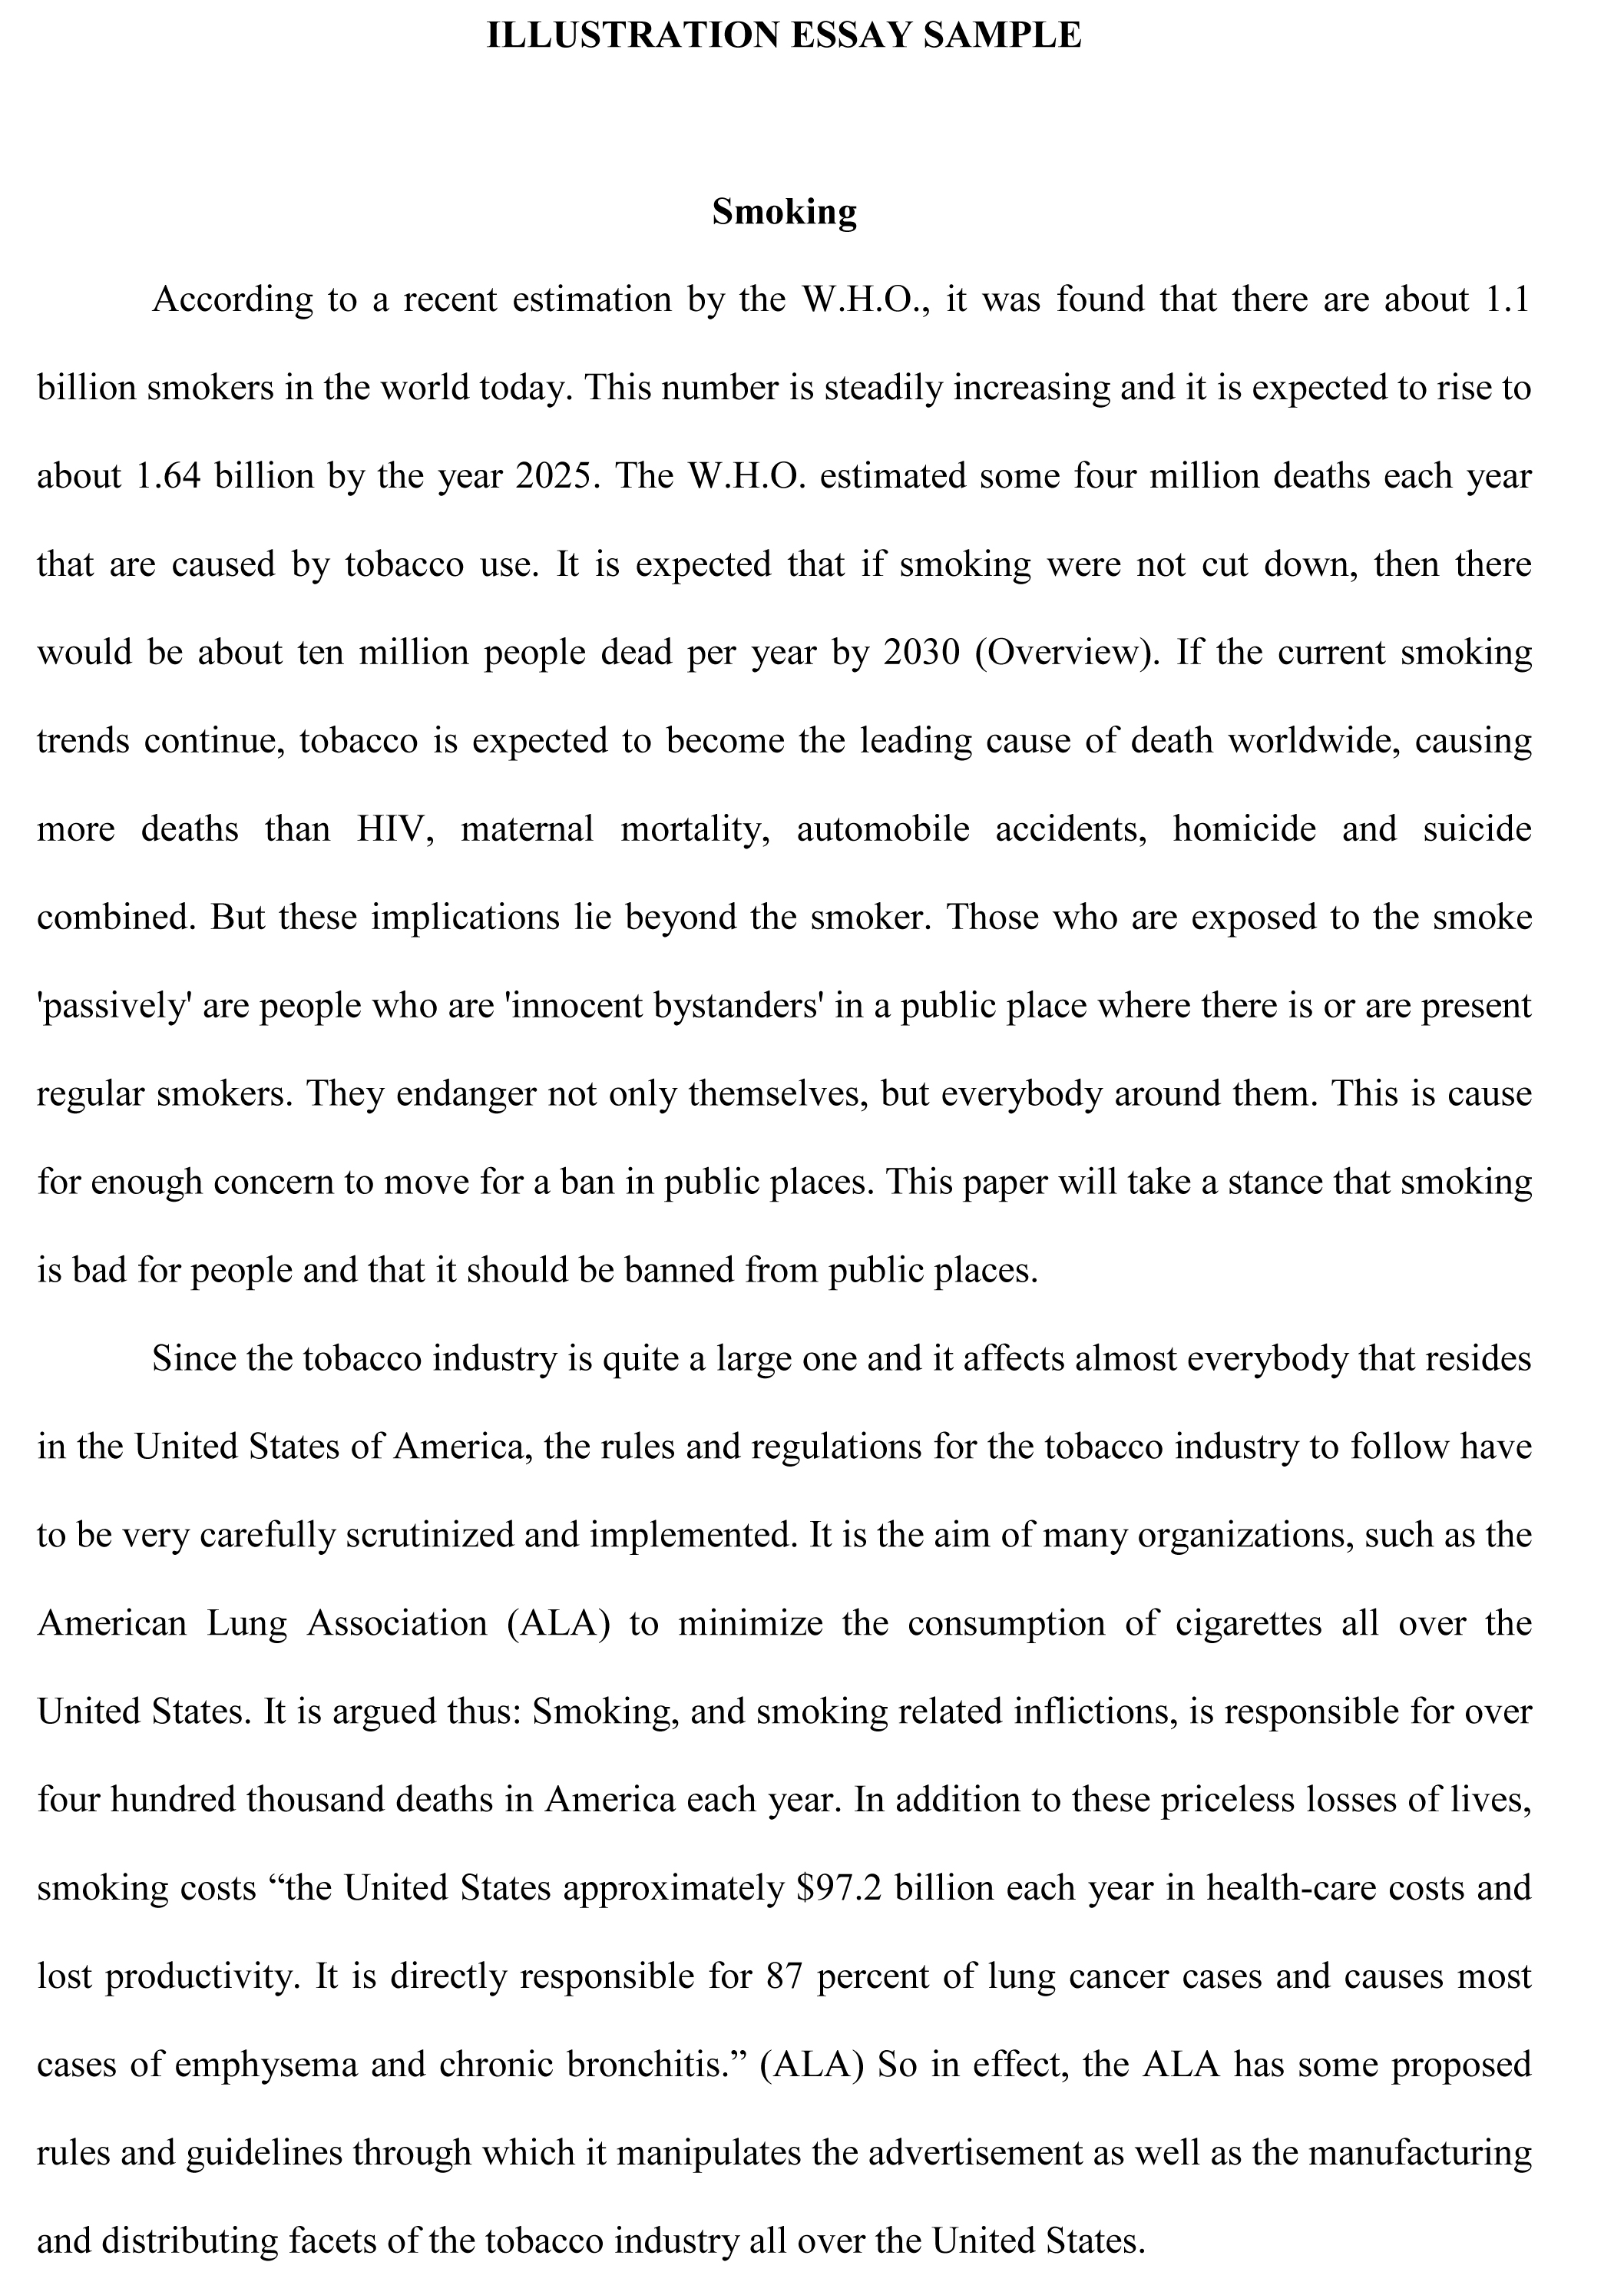 001 Illustration Essay Sample Example Free Archaicawful Write Writing Prompts Examples Website To Essays Full